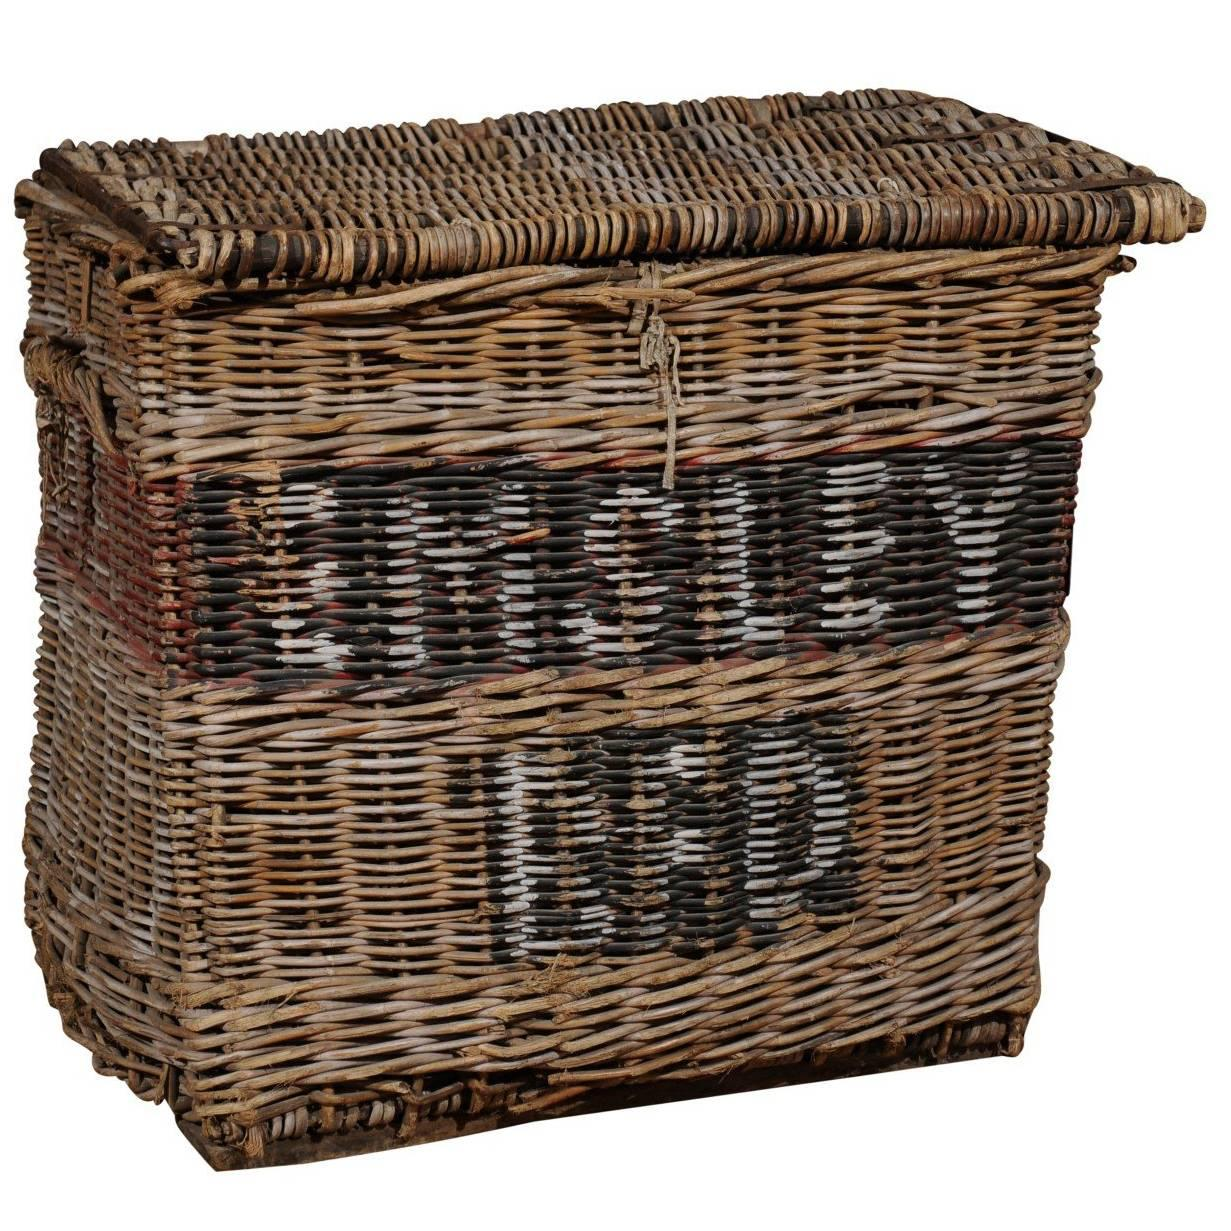 Large English Wicker Linen Basket With Lateral Handles From The 19th Century